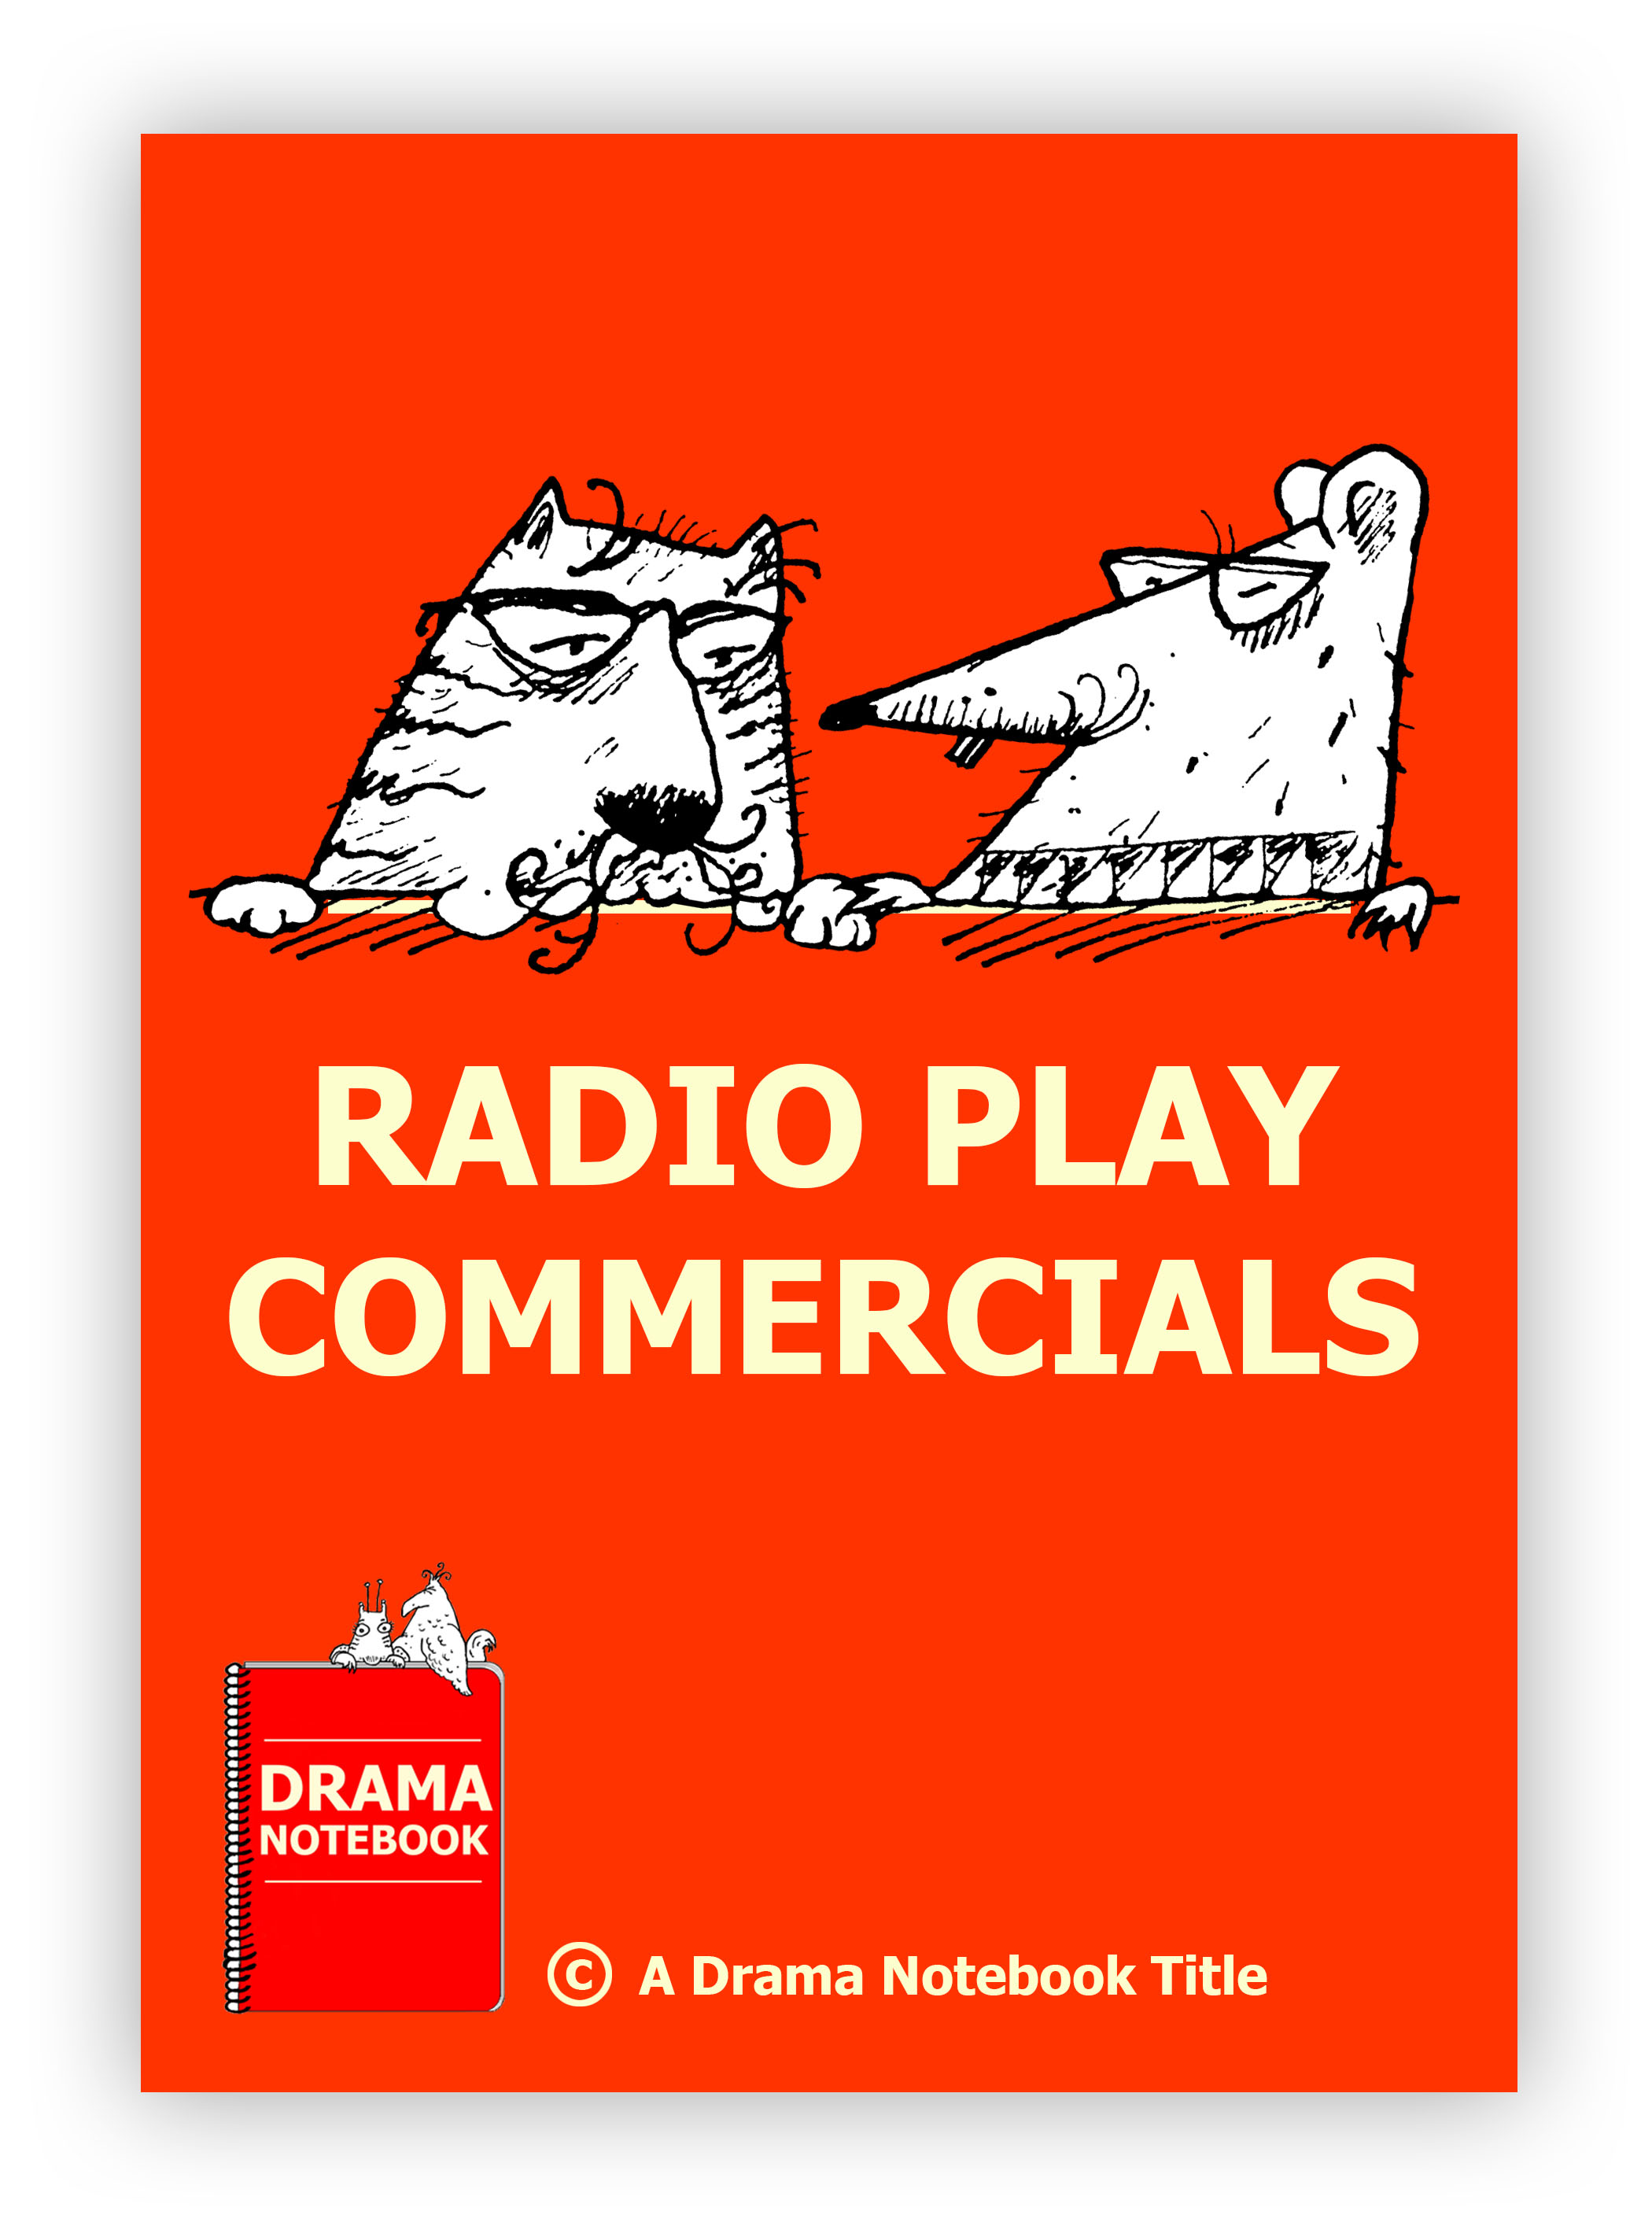 Radio Play Commercials